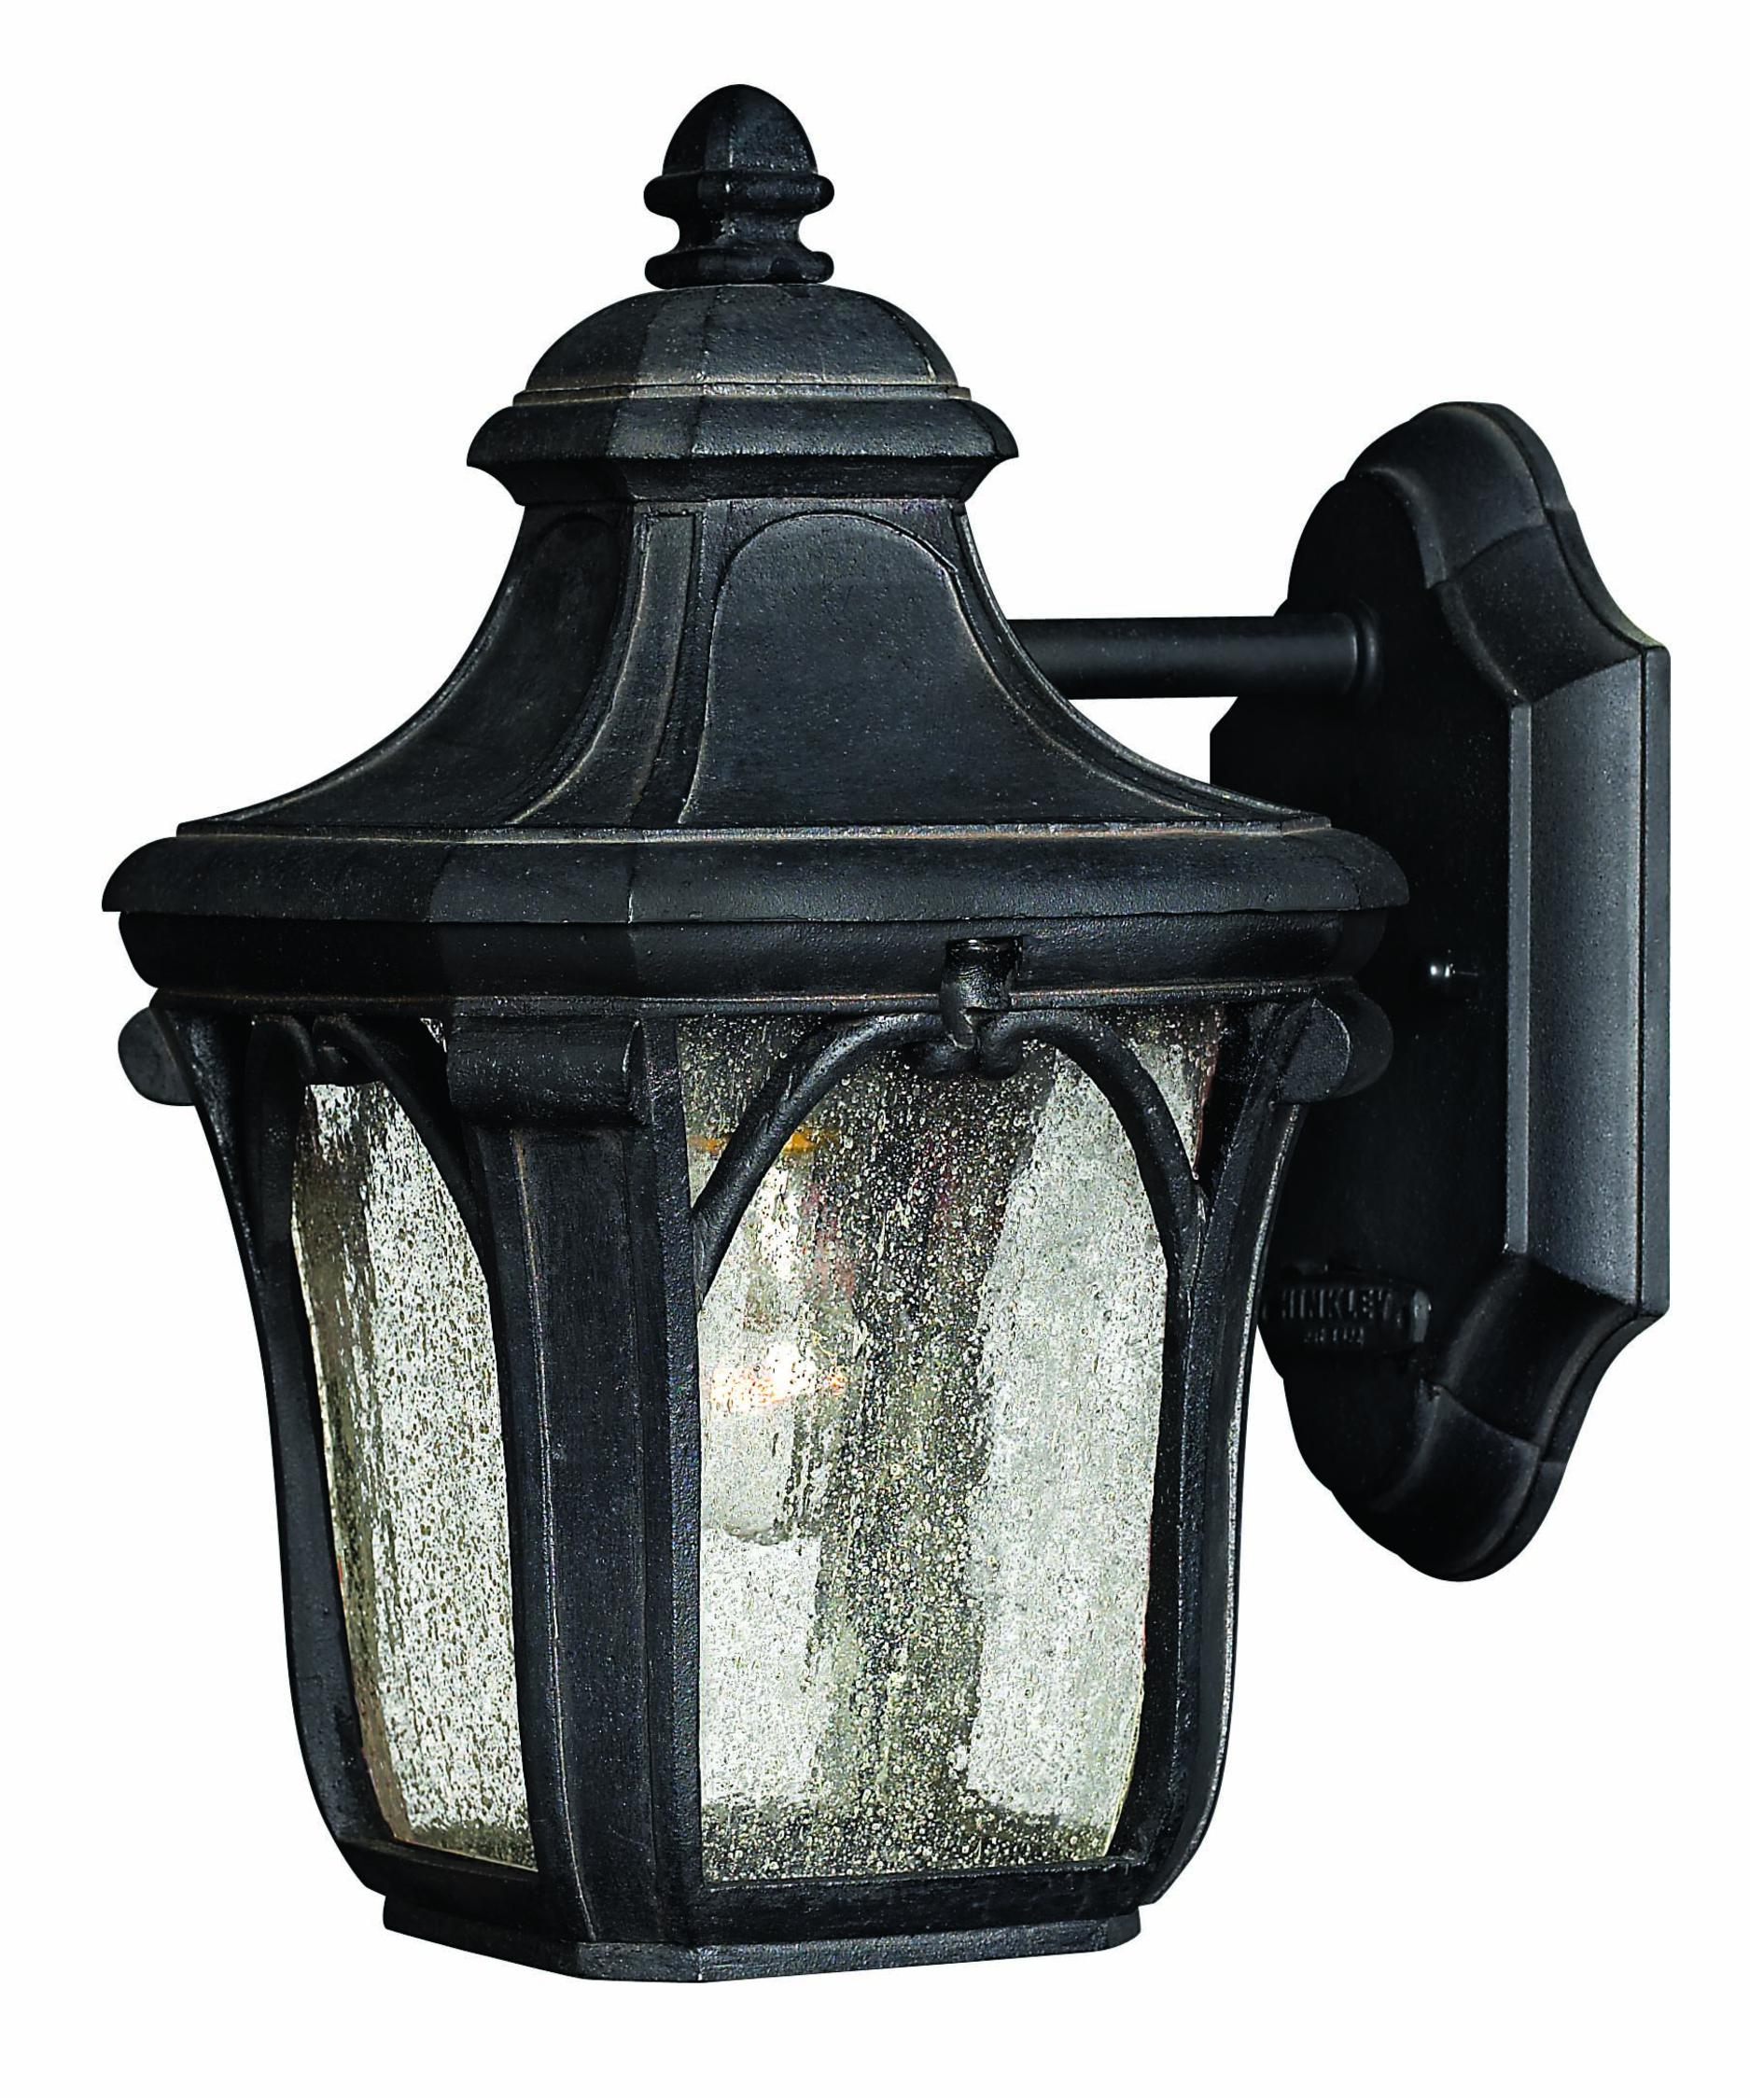 Hinkley Lighting 1316 Trafalgar 6 Inch Wide 1 Light Outdoor Wall Light |  Capitol Lighting 1 800lighting.com